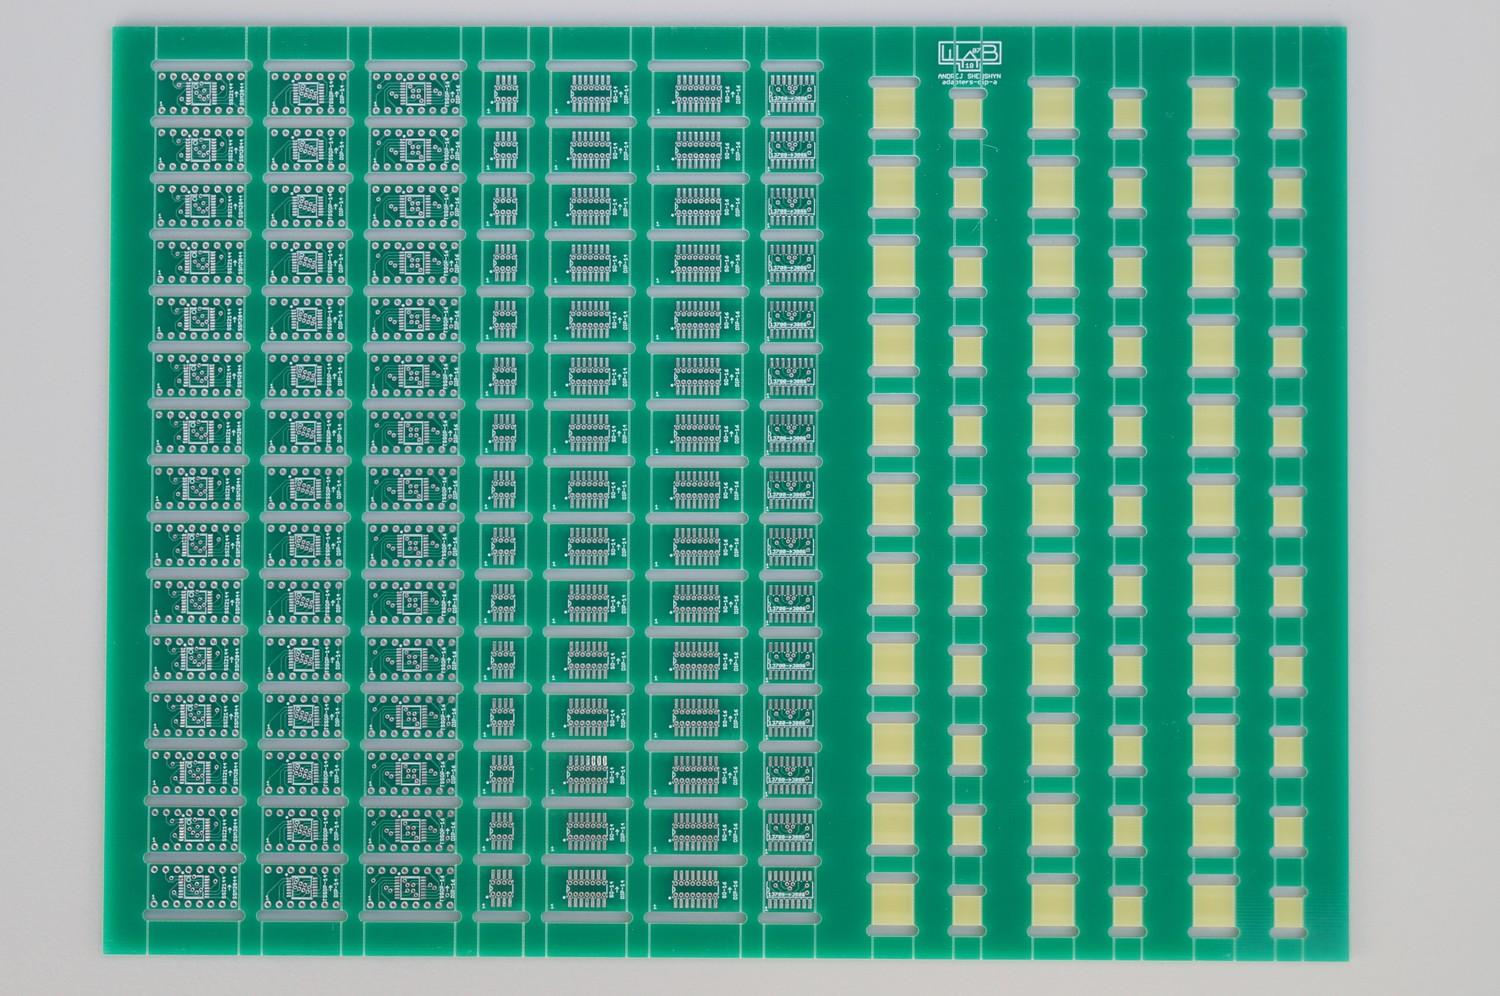 Panelized Adapter Pcbs Smd To Dip Sip For Synthesizer Techs Diy Sot 23 Adapters Polysix Switch 01